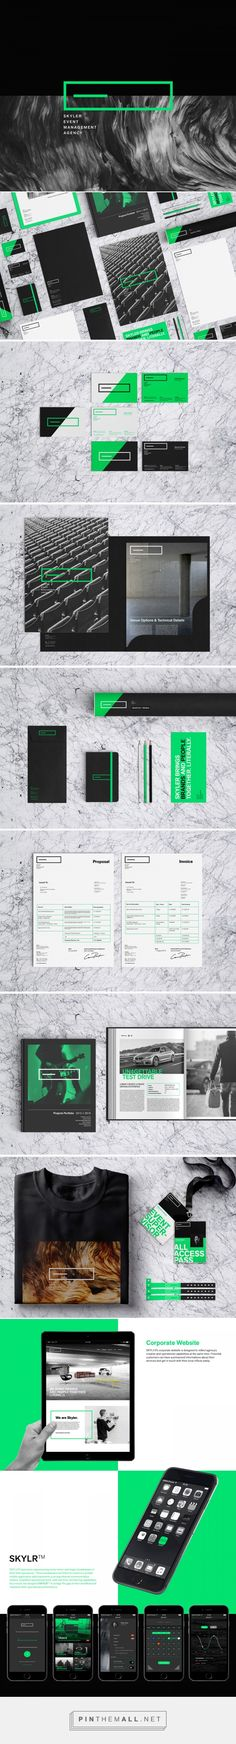 SKYLER Event Management Agency Branding by Samet K. | Fivestar Branding Agency – Design and Branding Agency & Curated Inspiration Gallery